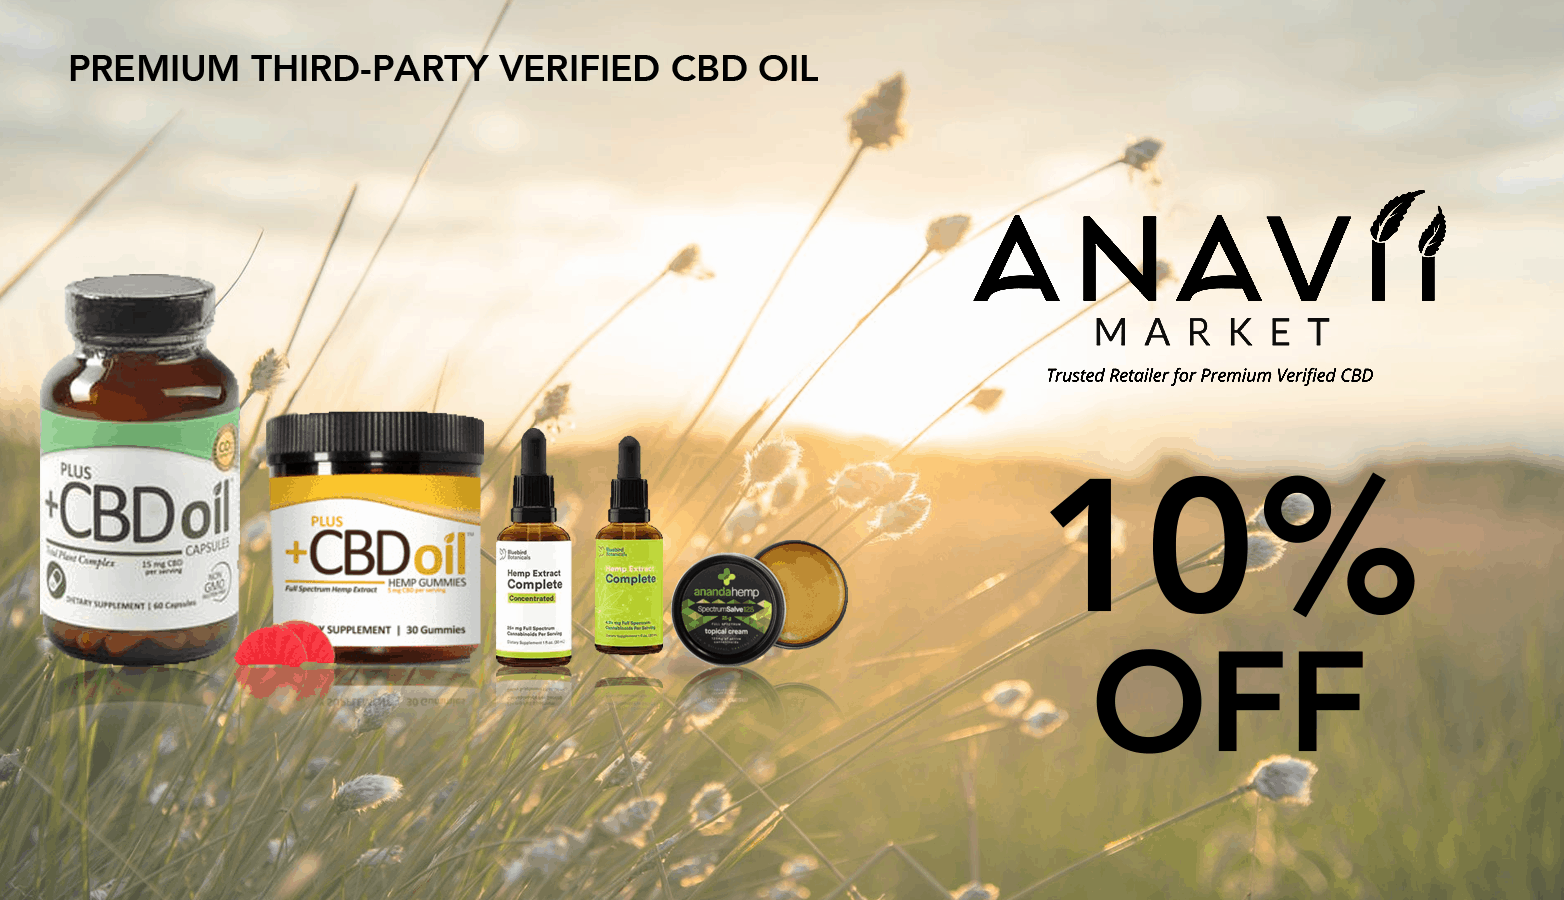 Anavii Market CBD Coupon Code discounts promos save on cannabis online Website Redesign